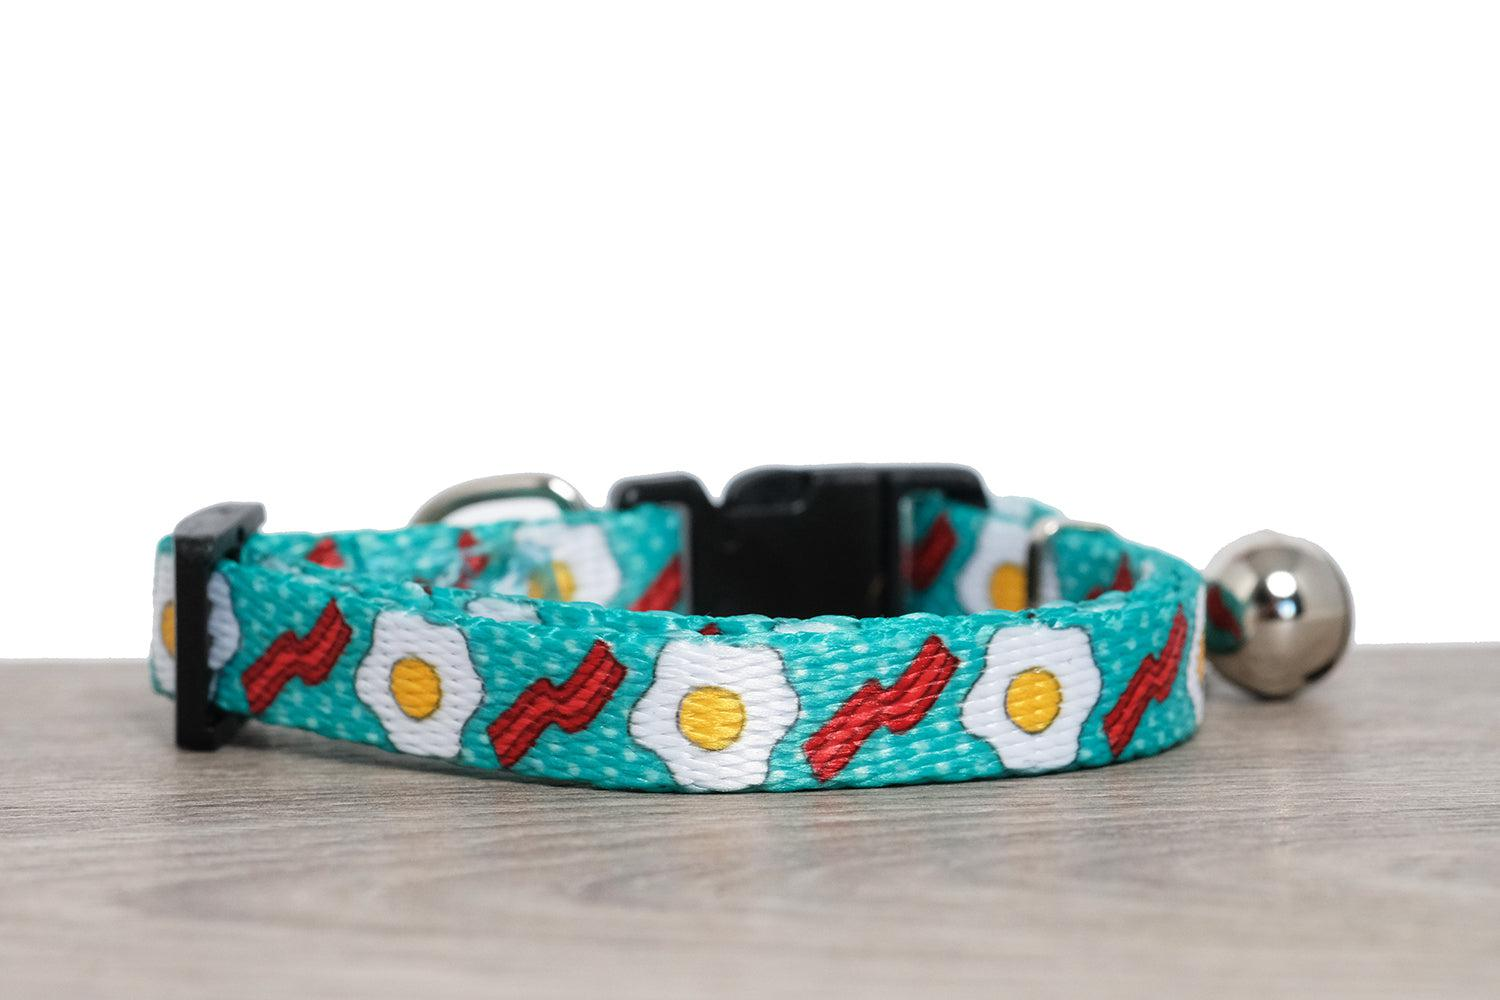 cat collar australia, bacon and eggs cat collar, cute cat collar featuring bacon and eggs print, cat collars Australia